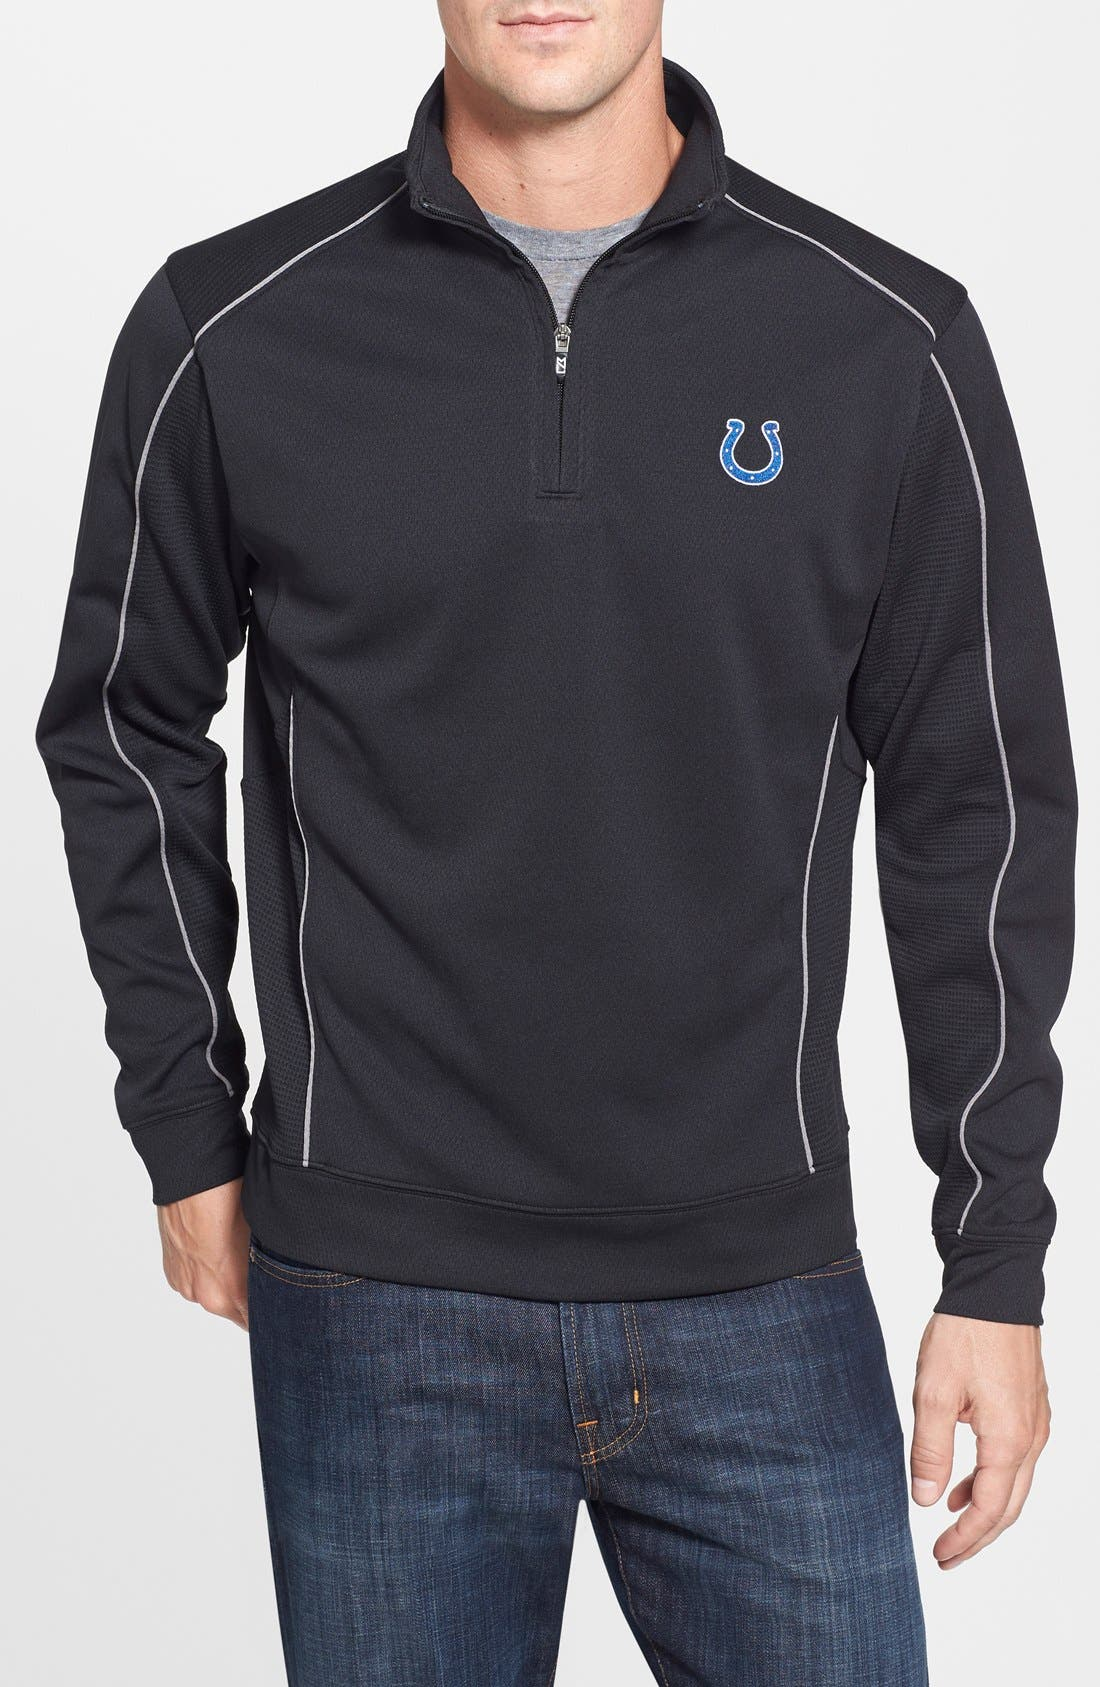 Main Image - Cutter & Buck Indianapolis Colts - Edge DryTec Moisture Wicking Half Zip Pullover